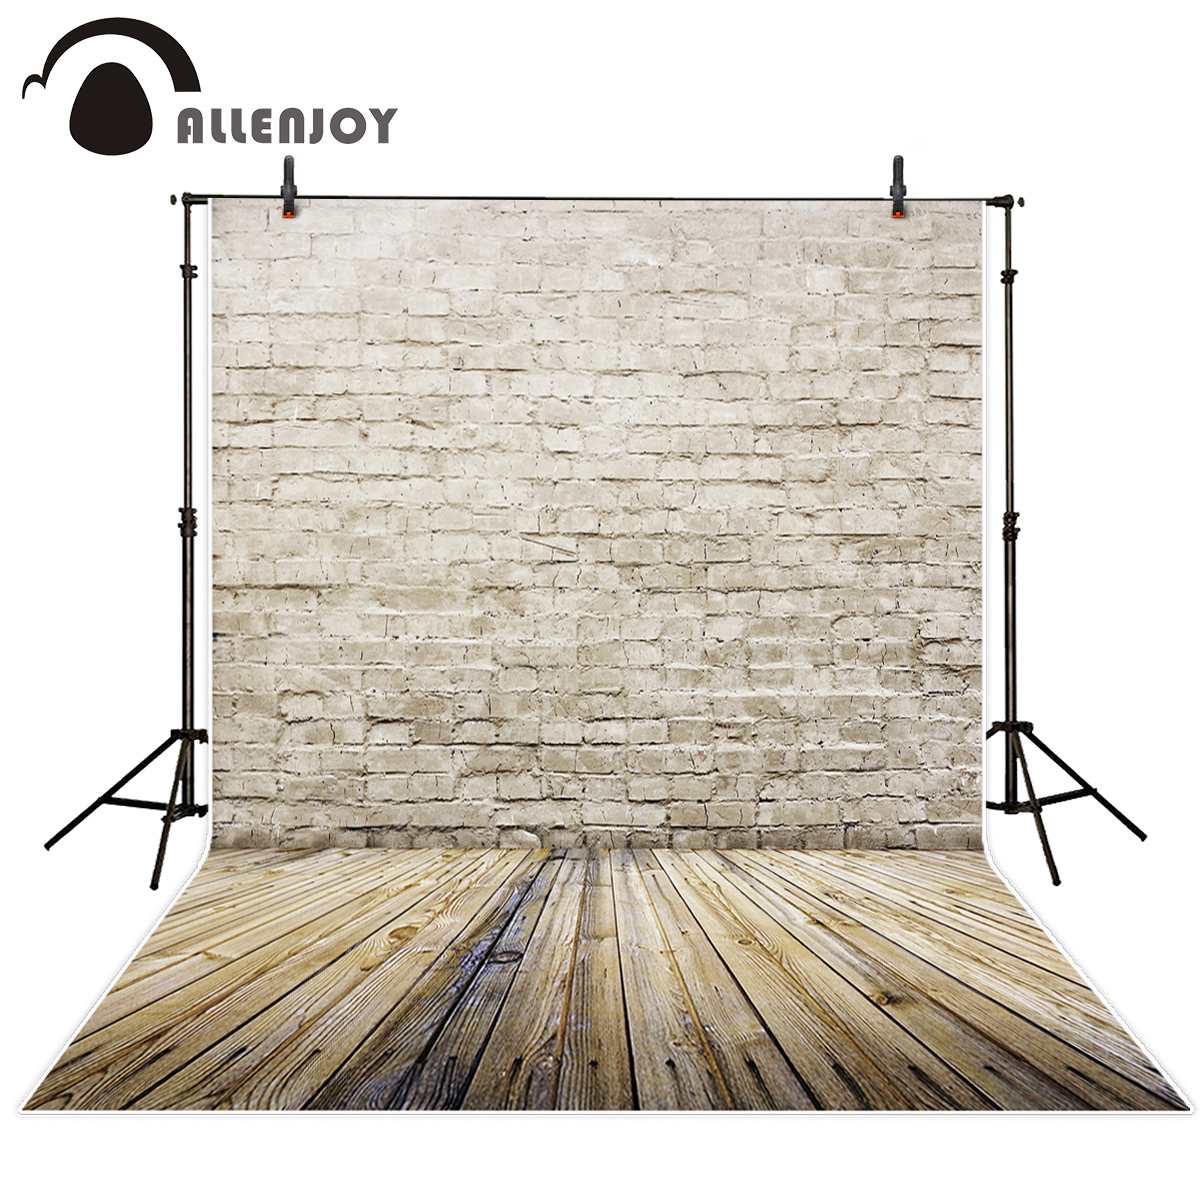 Allenjoy Brick wall Wood Gray distressed vintage Brick wall Photographic background vinyl photography backdrops photo studio l 288 portable fm radio stereo speaker mp3 music player double loudspeaker with tf card usb disk input gift for parents